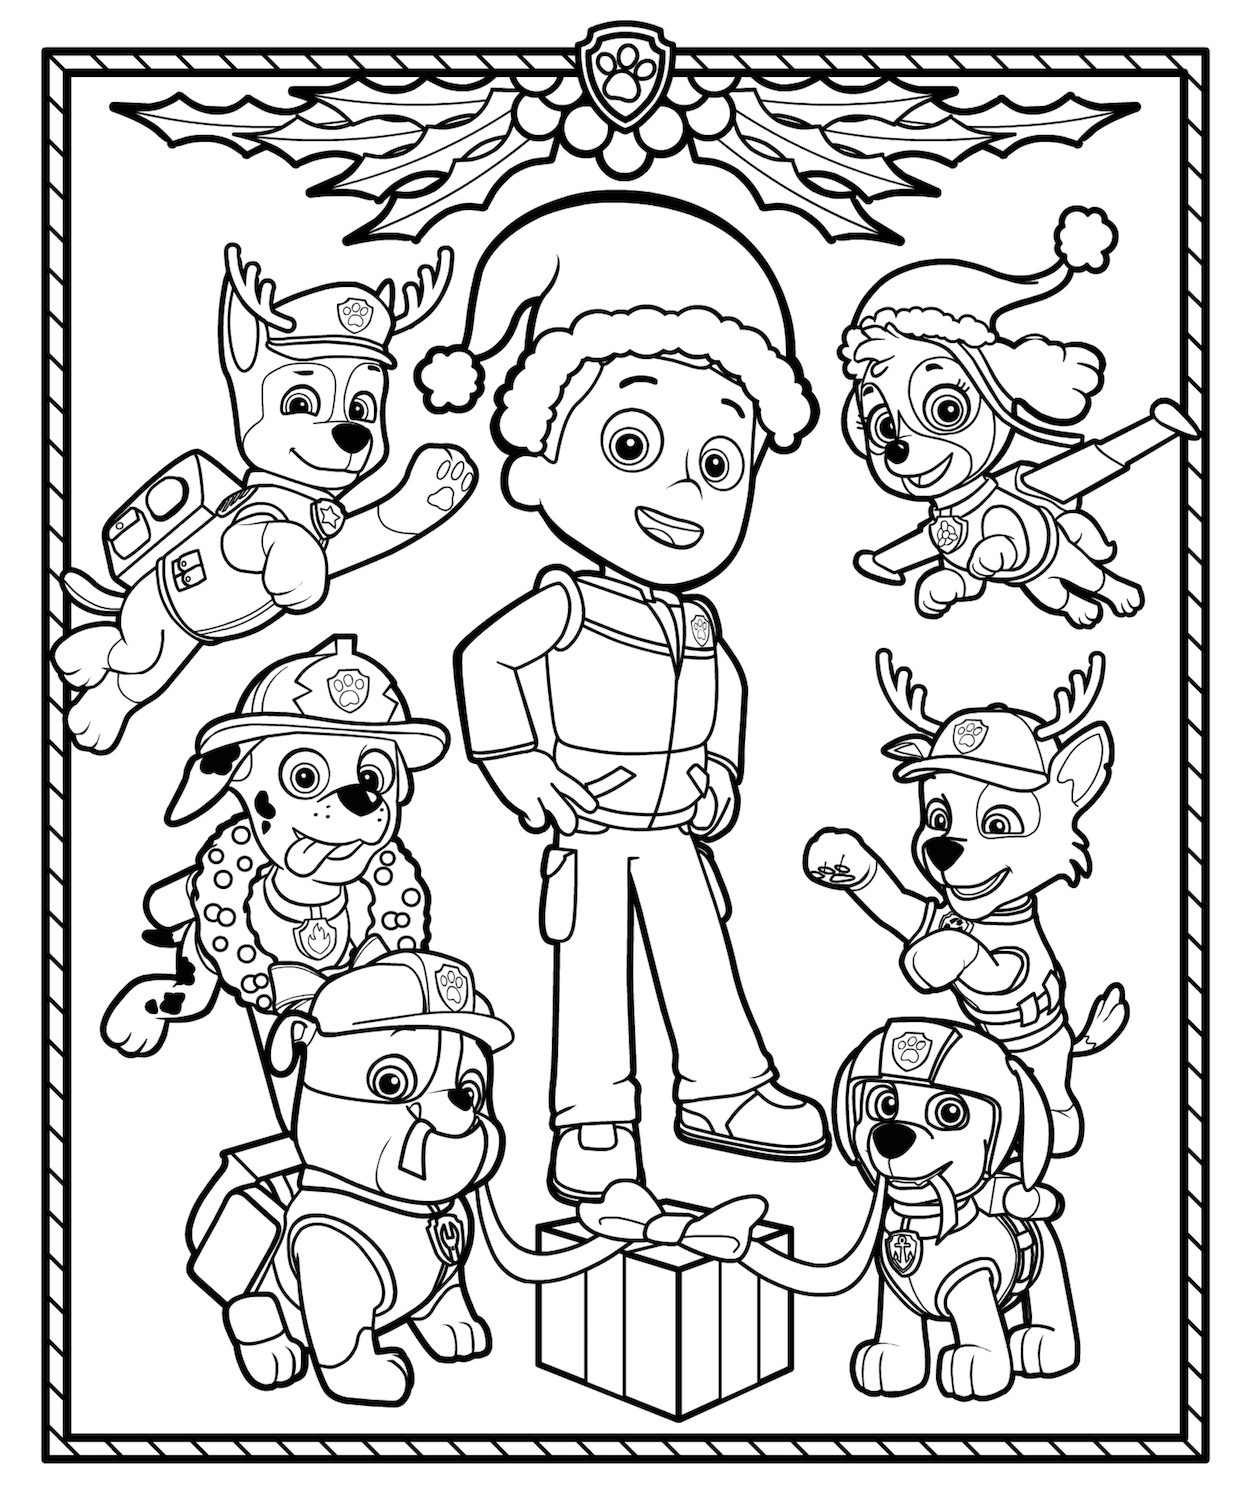 christmas printables coloring pages craftsactvities and worksheets for preschooltoddler and christmas coloring printables pages